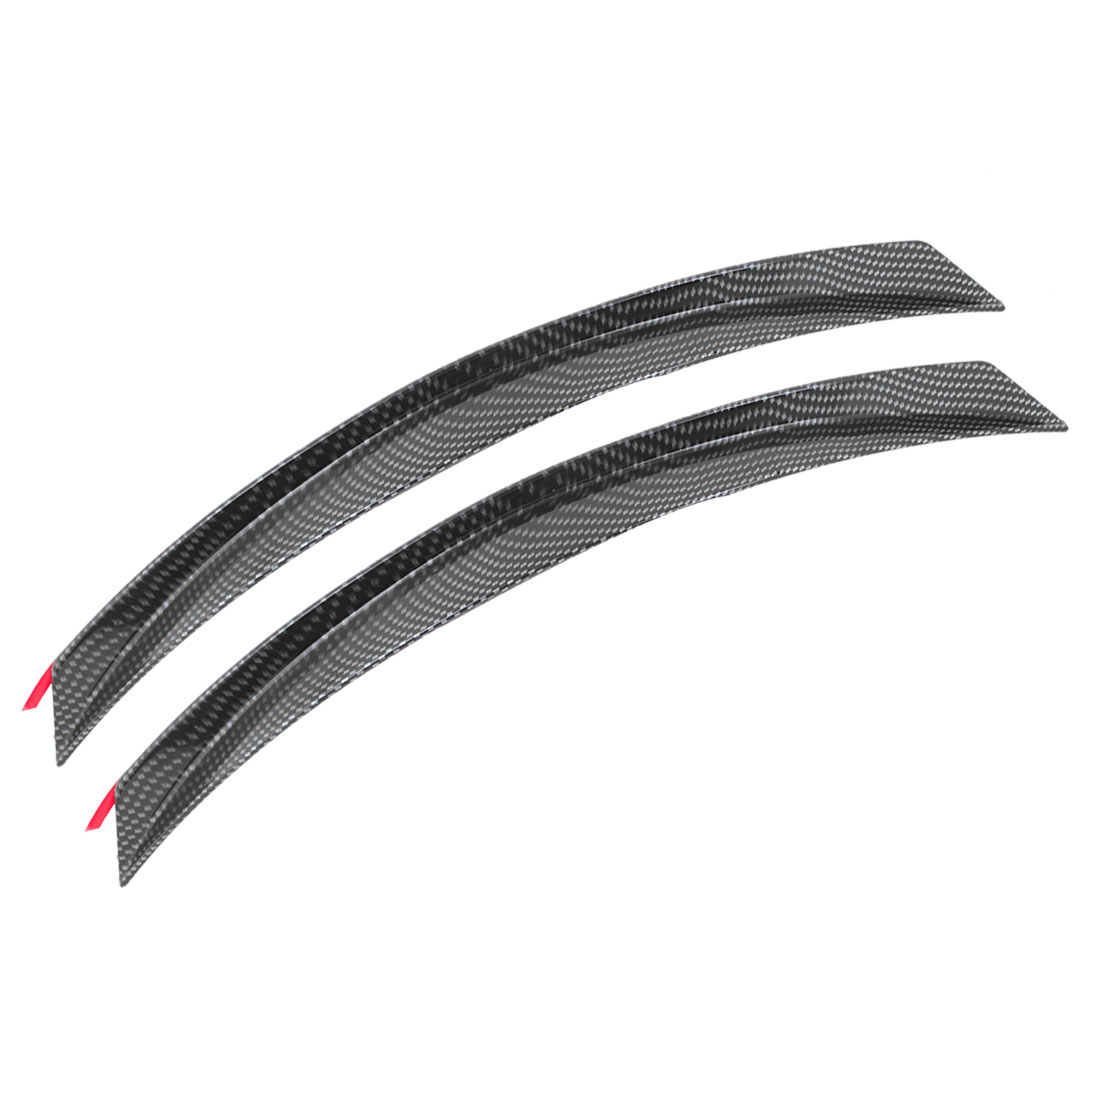 2PCS Car Black Gray Carbon Fiber Printed Plastic Wheel Trim Strip 36.5cm Long